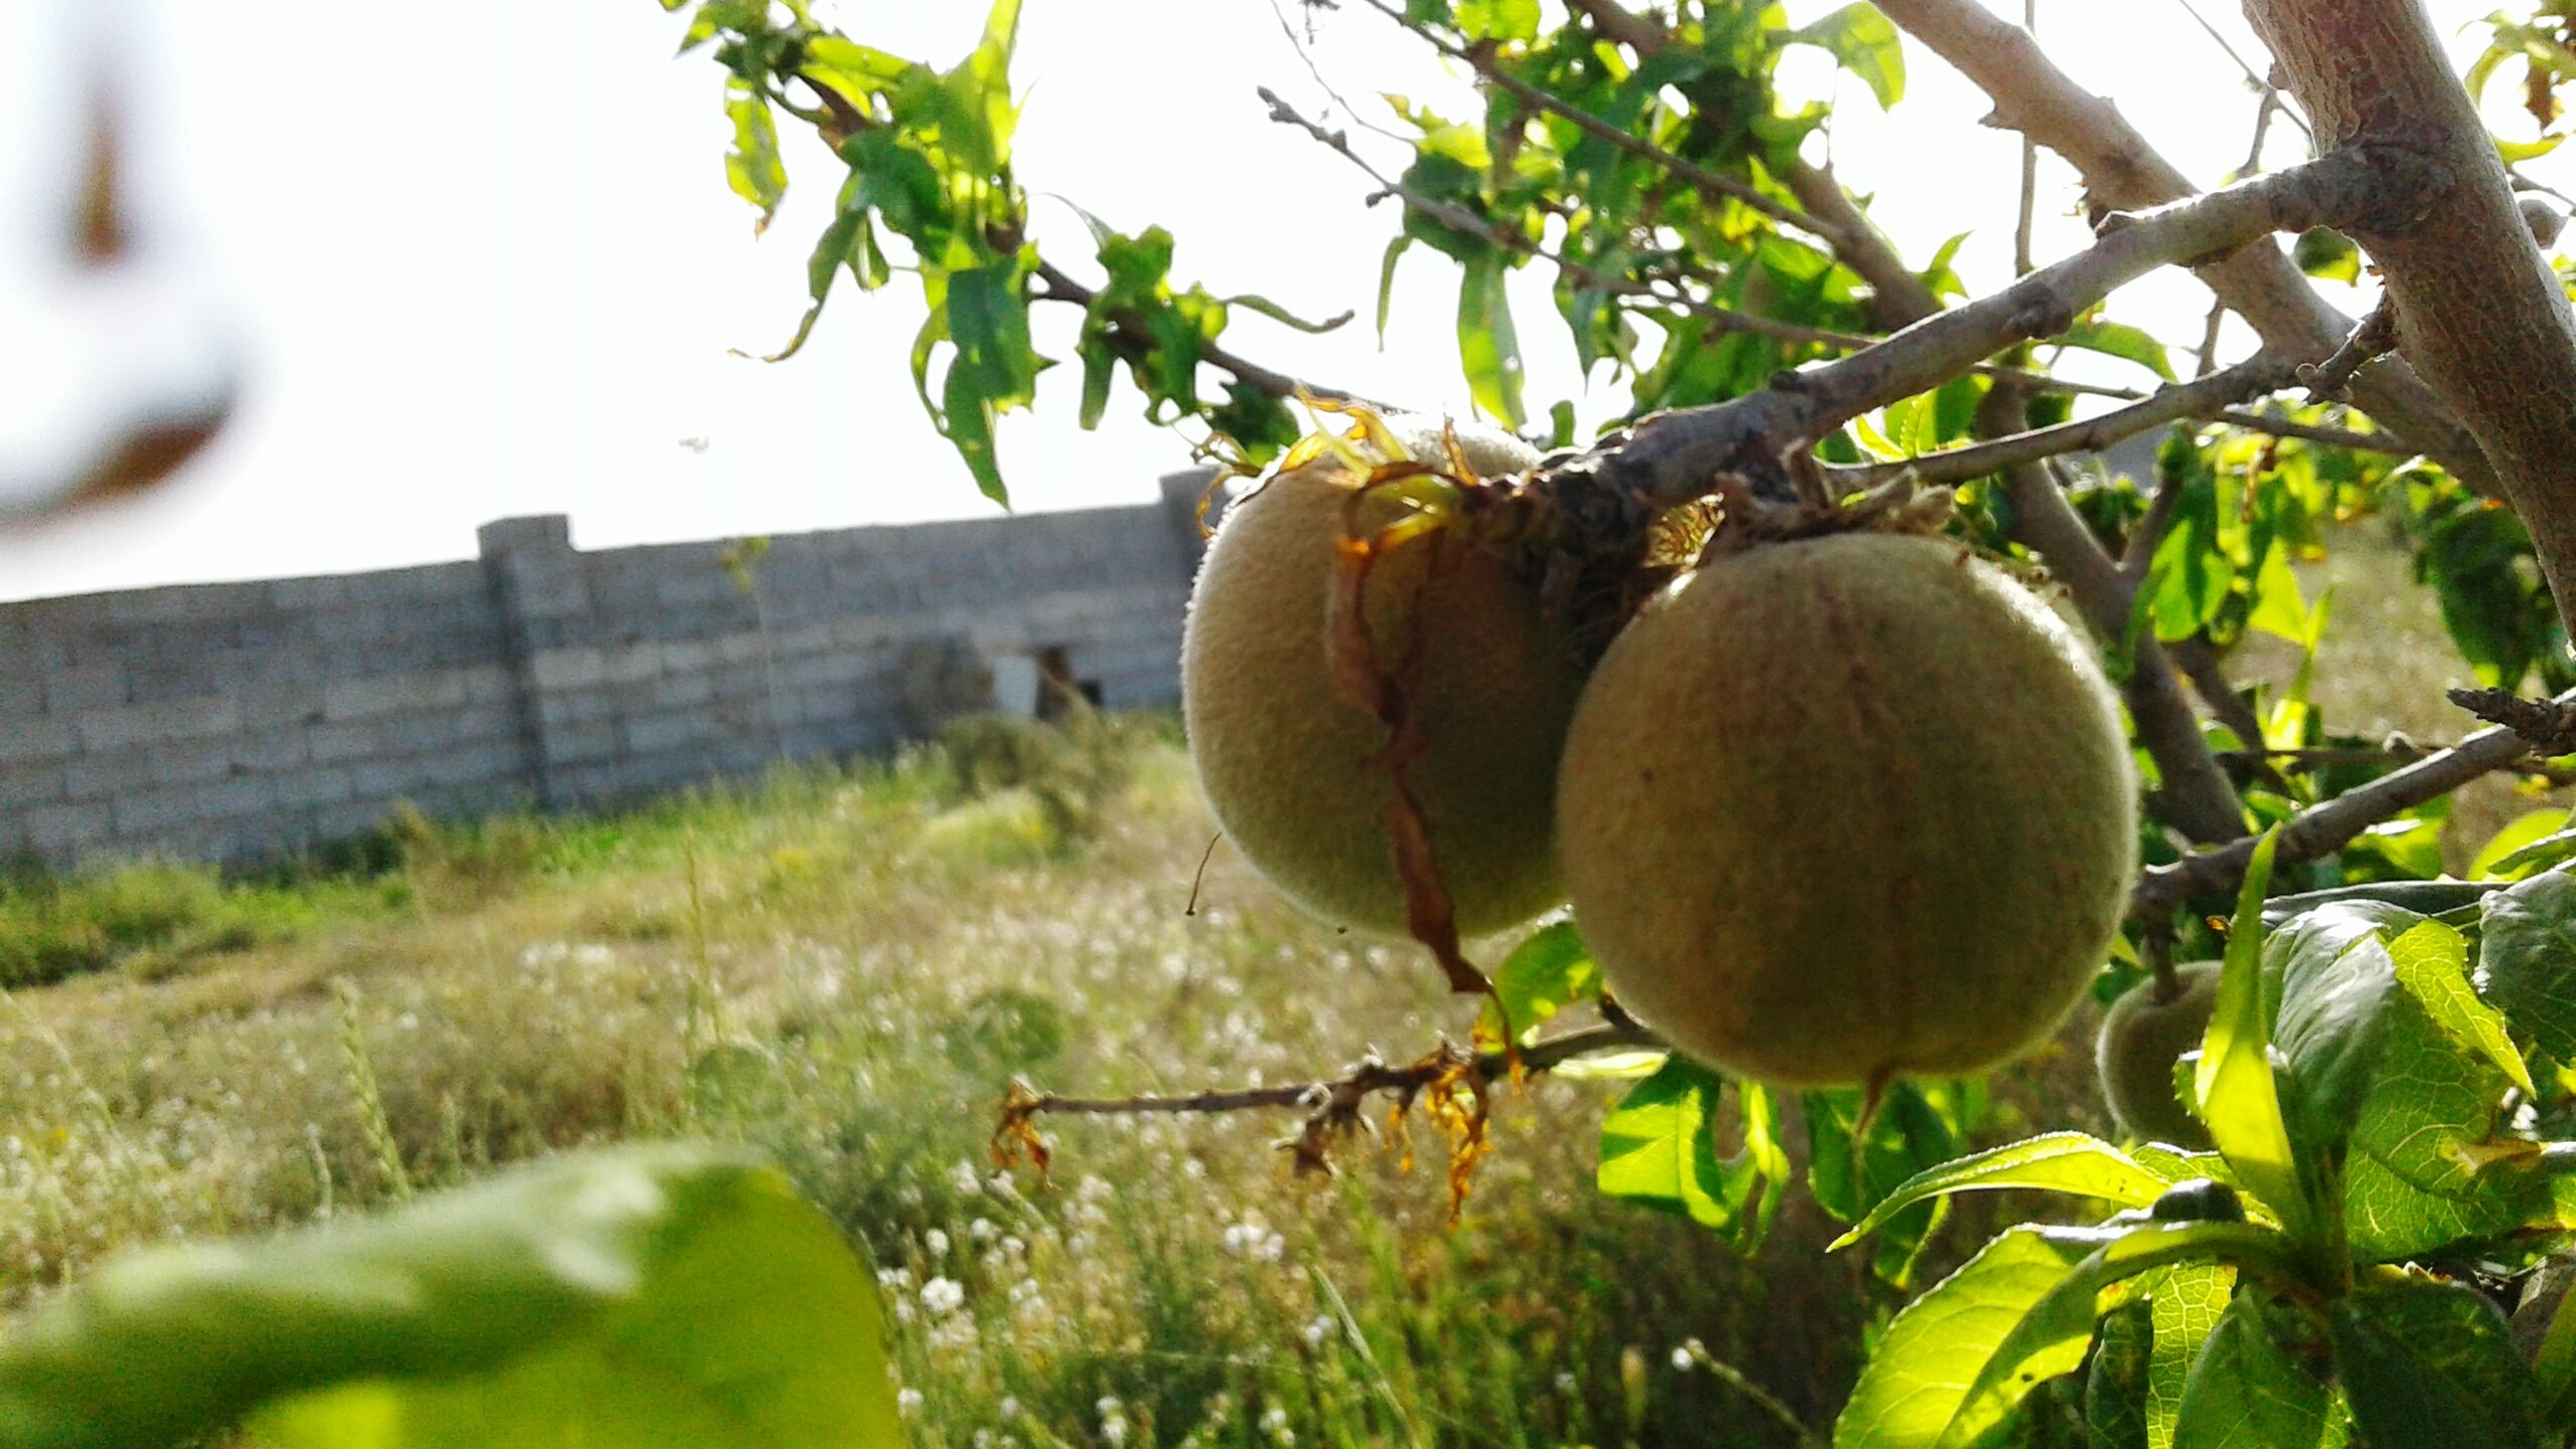 fruit, tree, growth, nature, food and drink, outdoors, healthy eating, citrus fruit, close-up, no people, fruit tree, food, leaf, freshness, day, orange tree